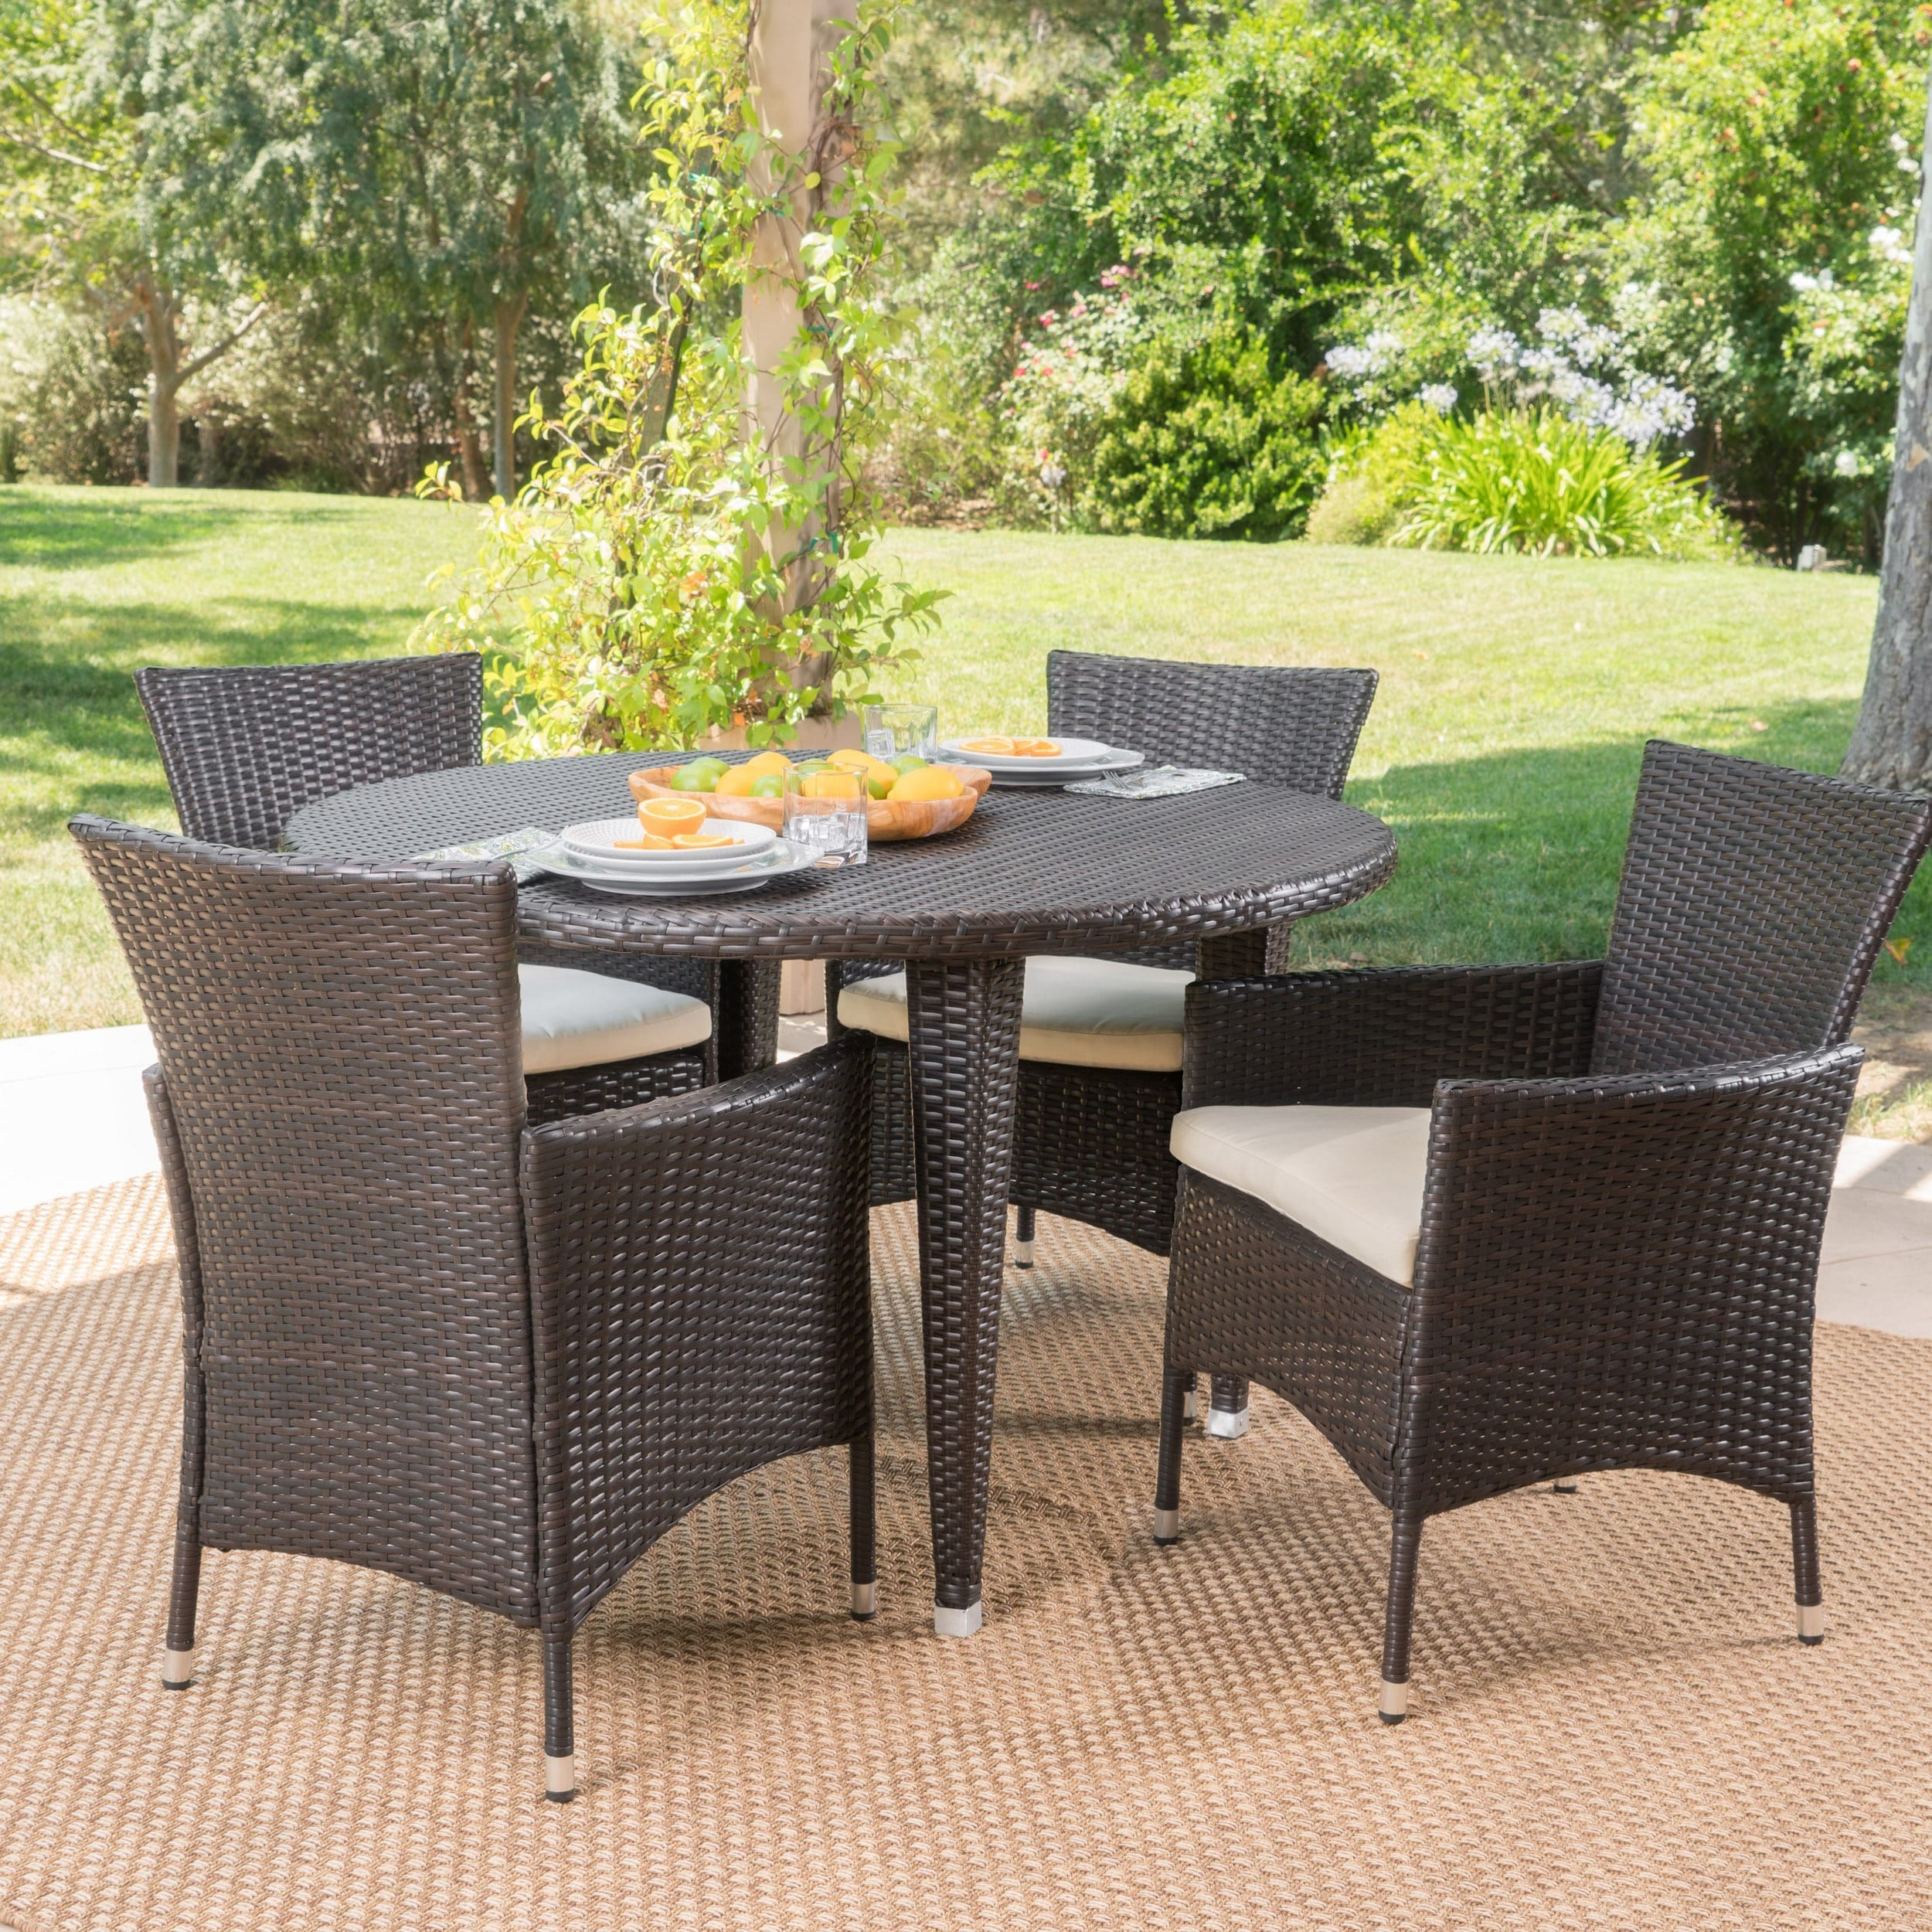 Christopher Knight Home Paoha Outdoor 5-piece Round Dining Set with Cushions by